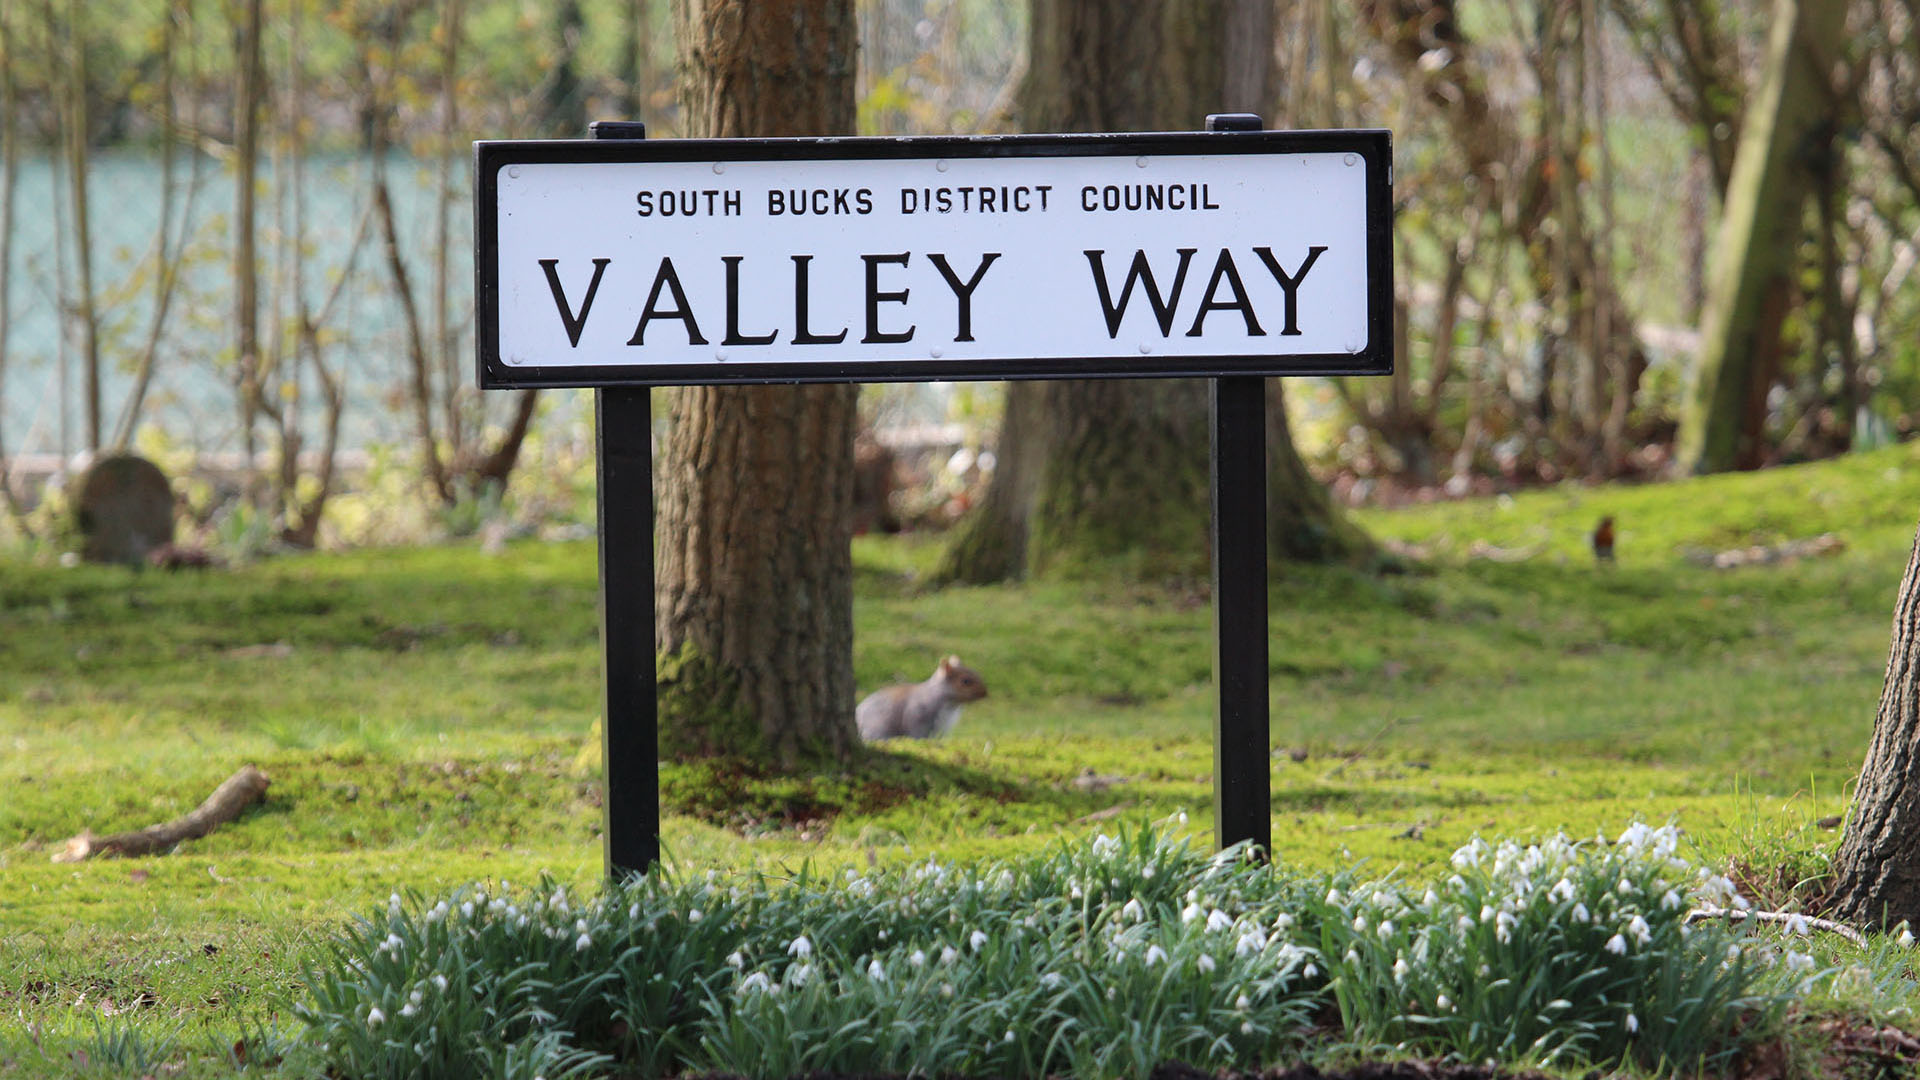 Valley Way sign